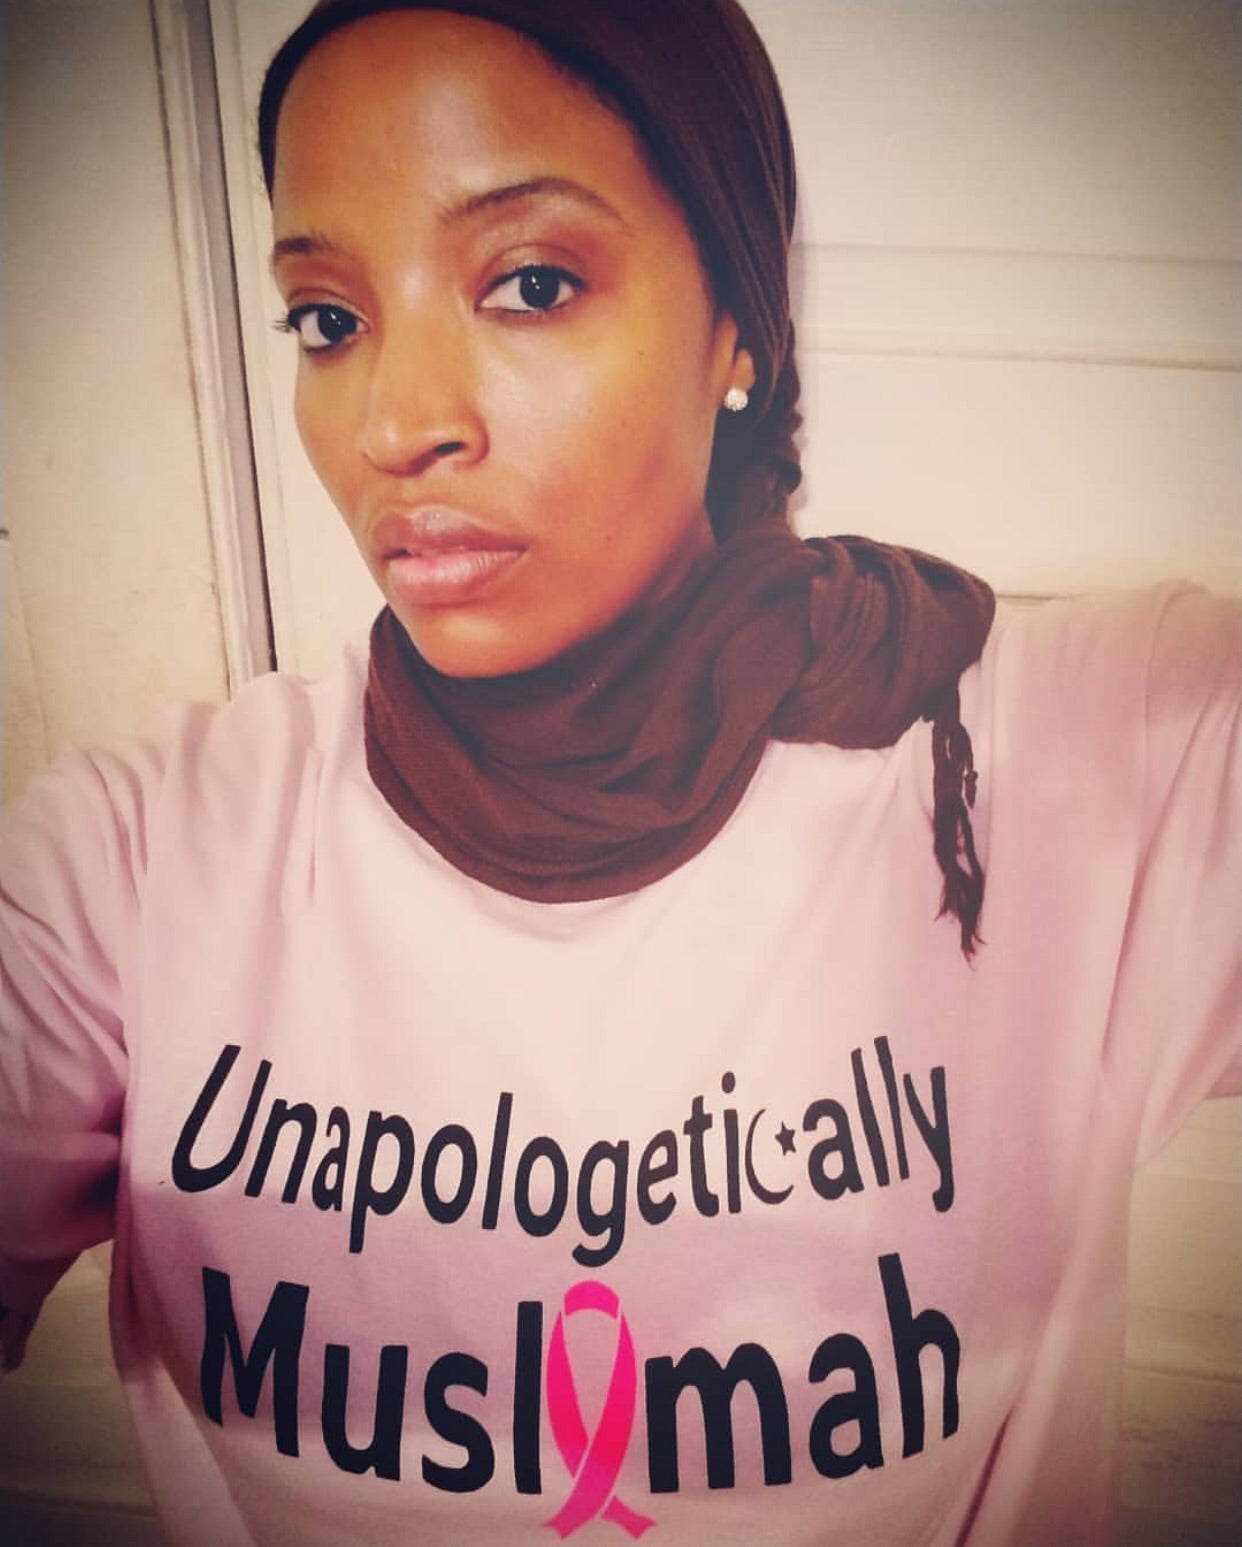 Unapologetically Muslimah Breast Cancer Tee